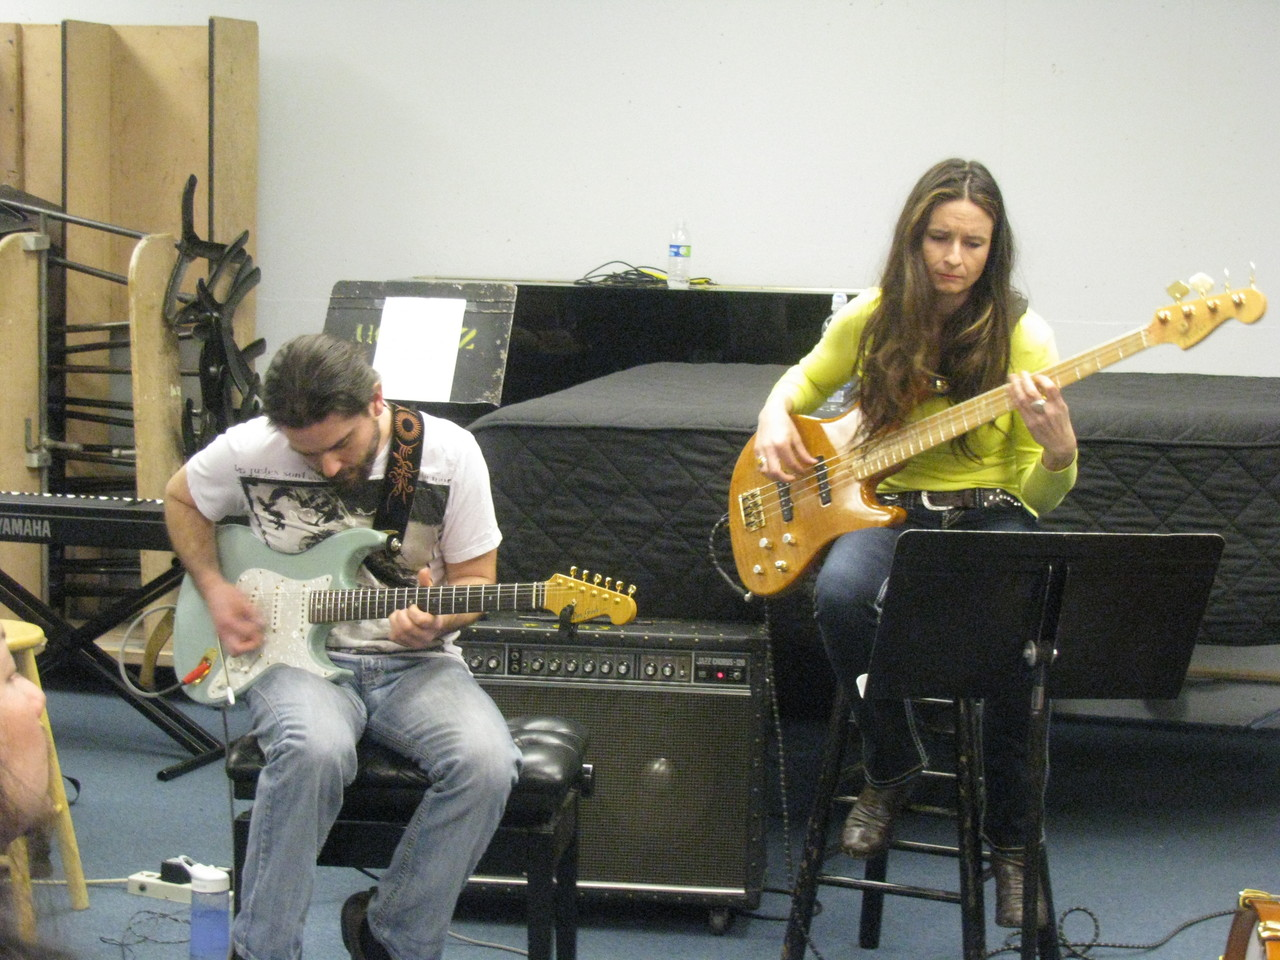 Matt Heulitt(L) and Angeline Saris(R)